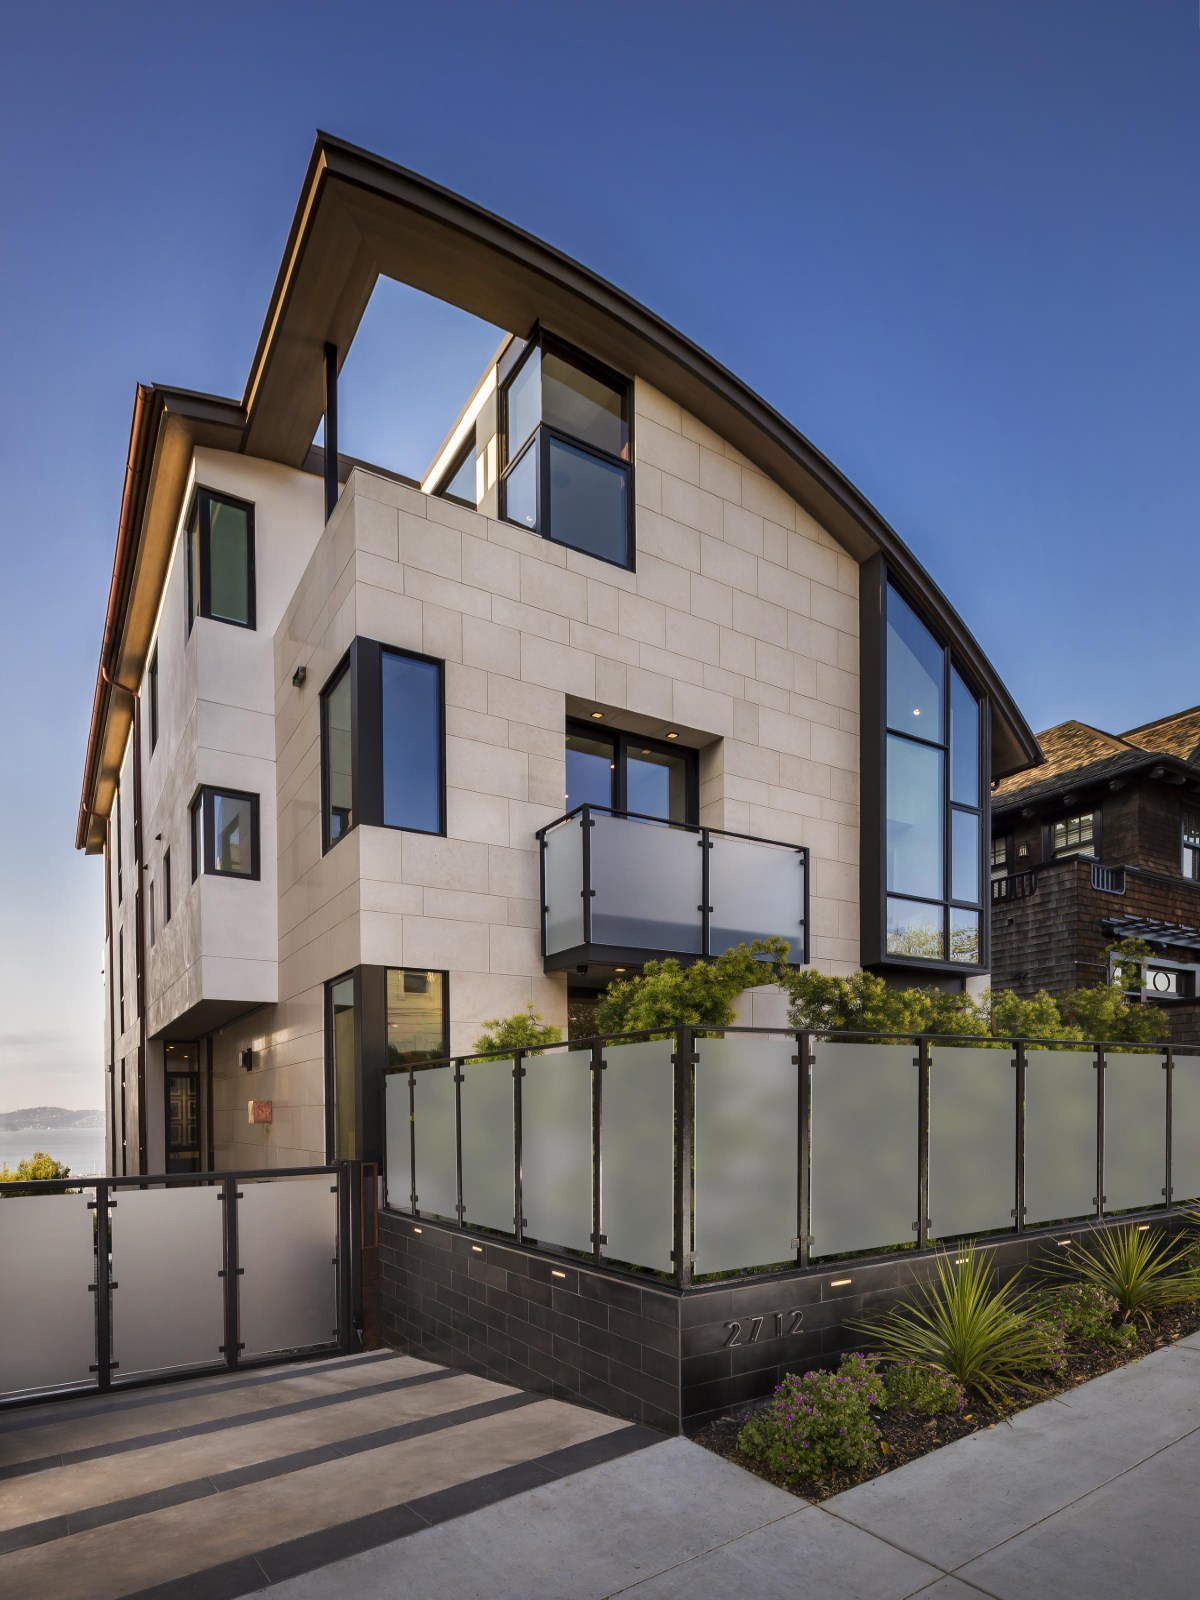 Modern Townhouse Townhouse Designs San Francisco: At $40 Million, This Was San Francisco's Most Expensive Townhouse Listing